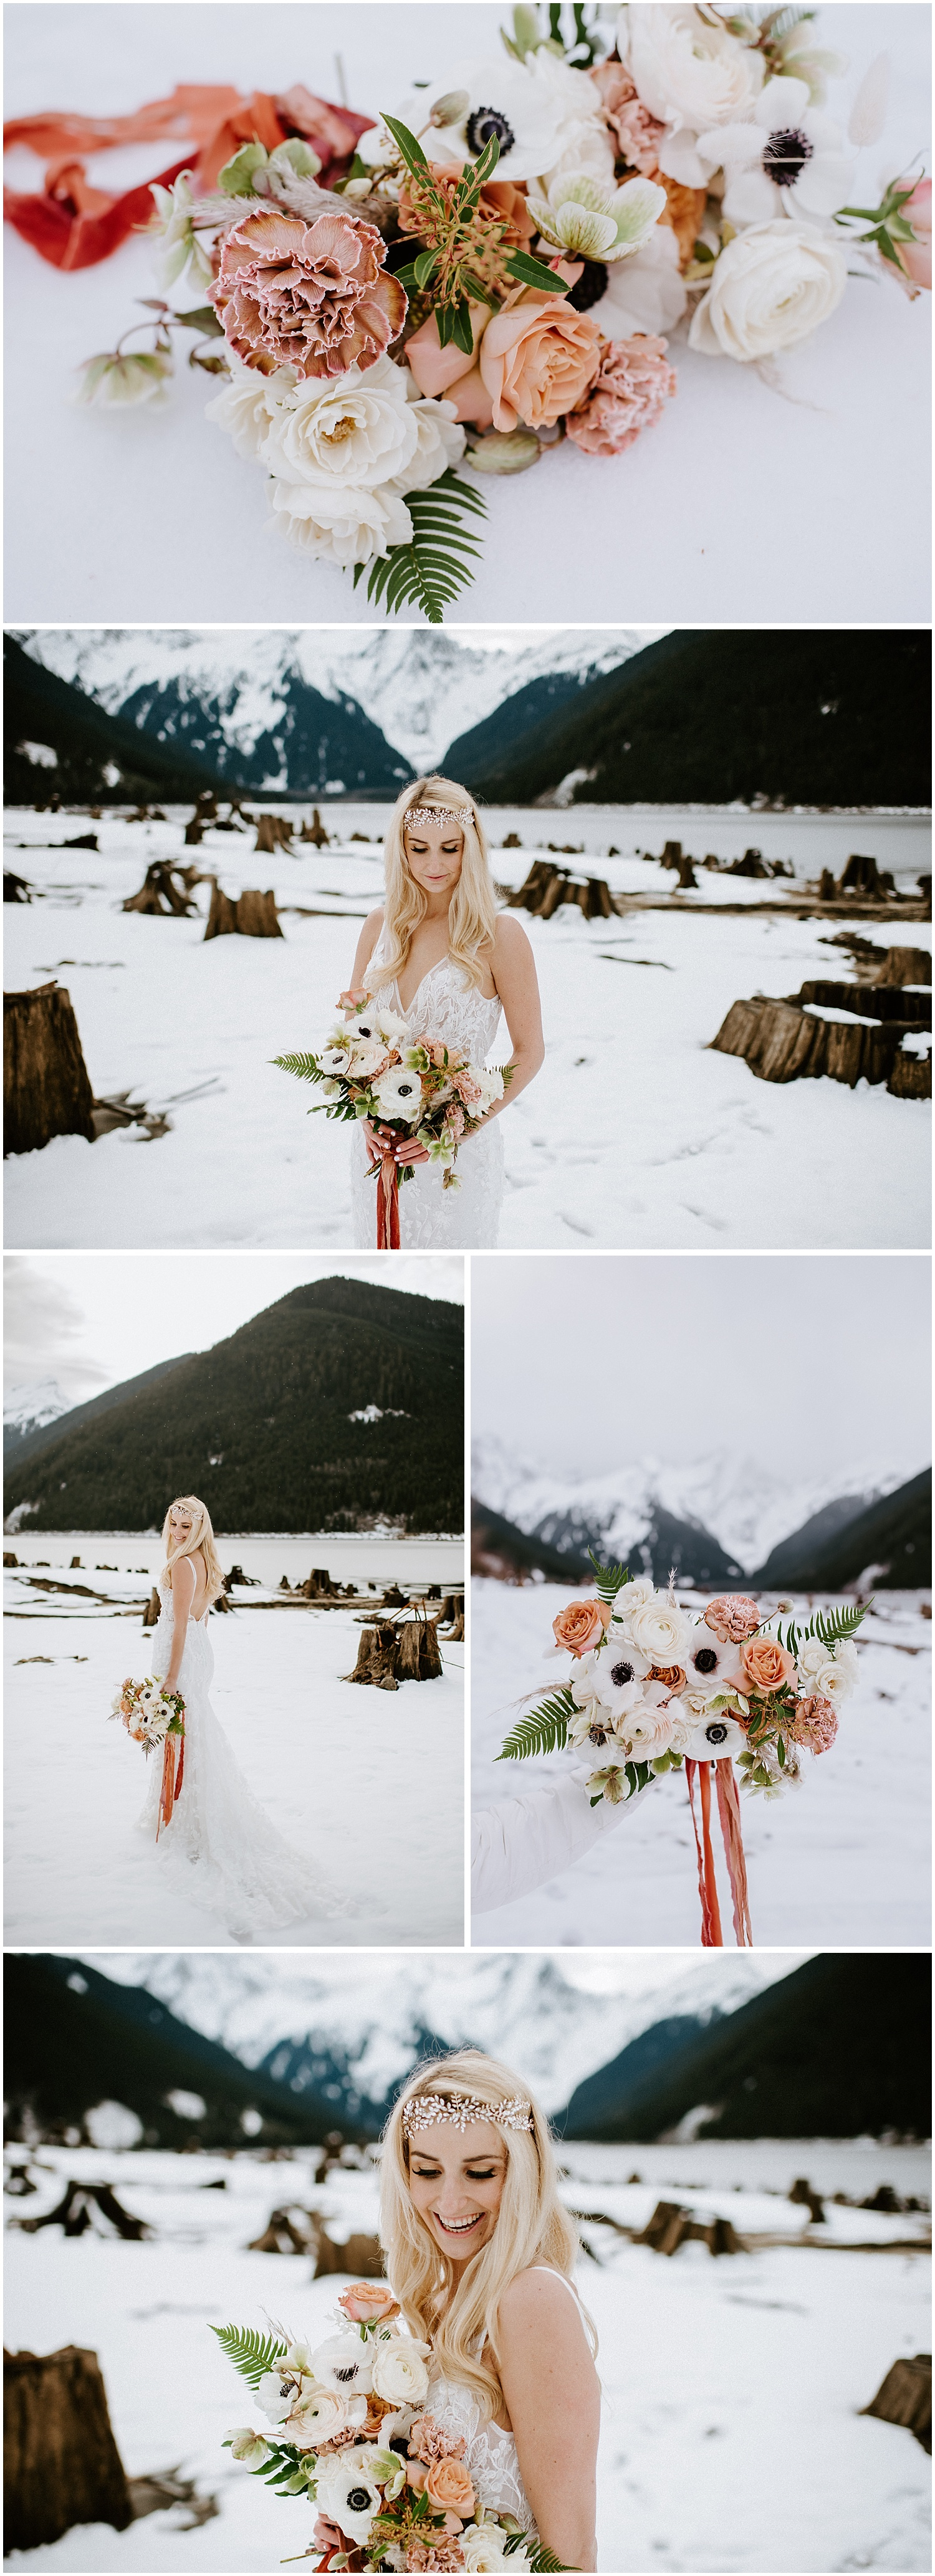 Jones_Lake_wedding_winter_elopement_vancouver_photographer_0245.jpg